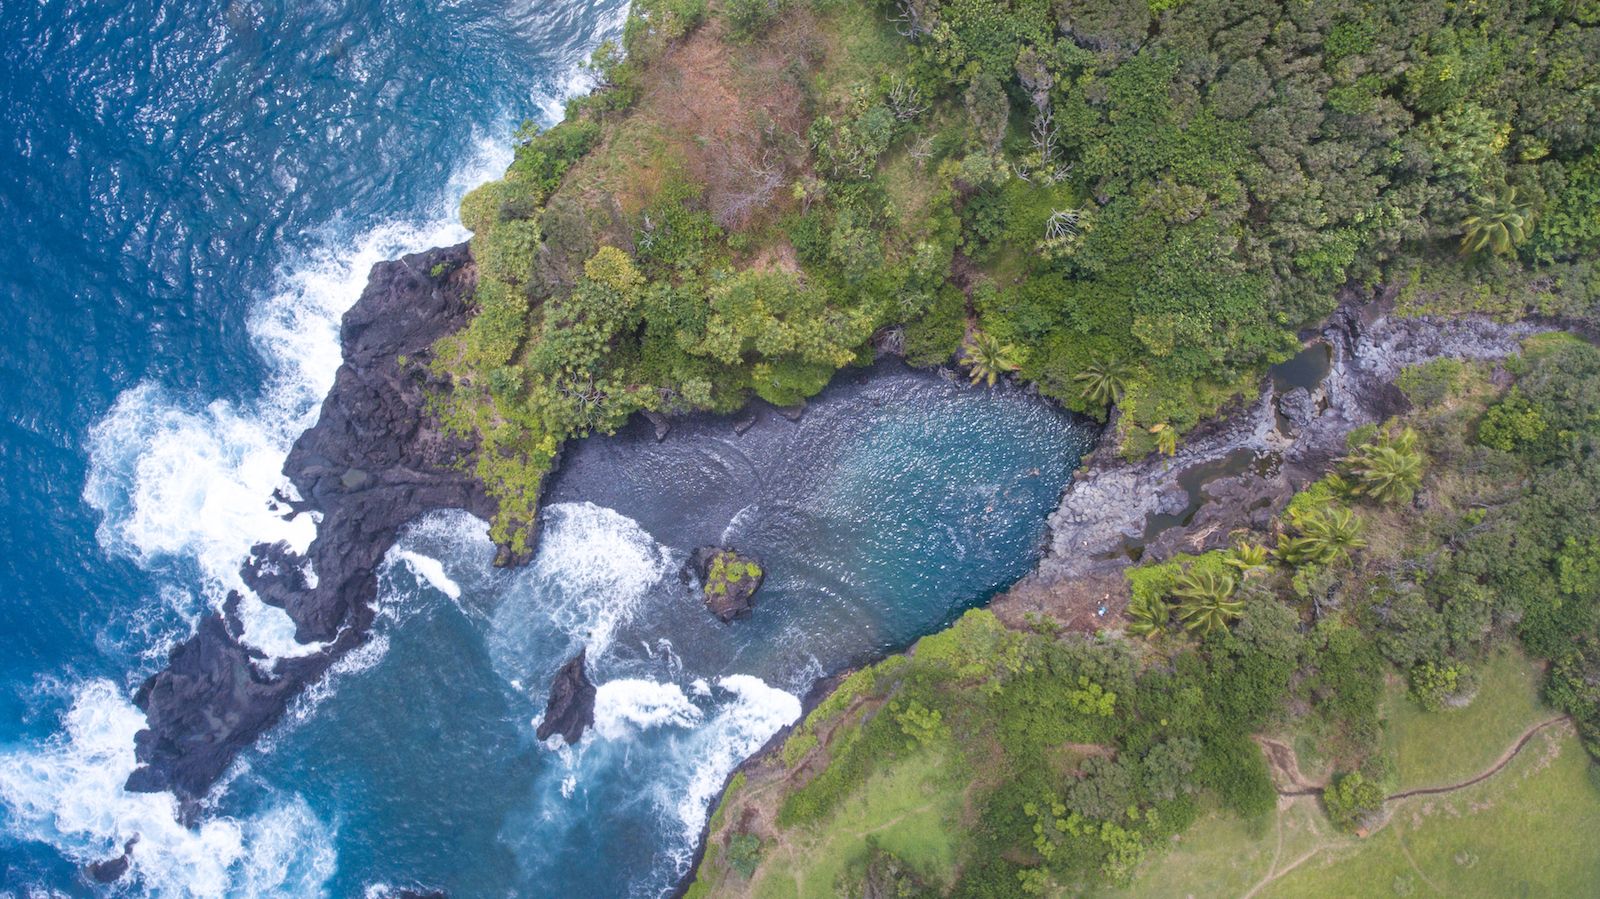 road-to-hana-tour-epic-eperience-maui-hawaii